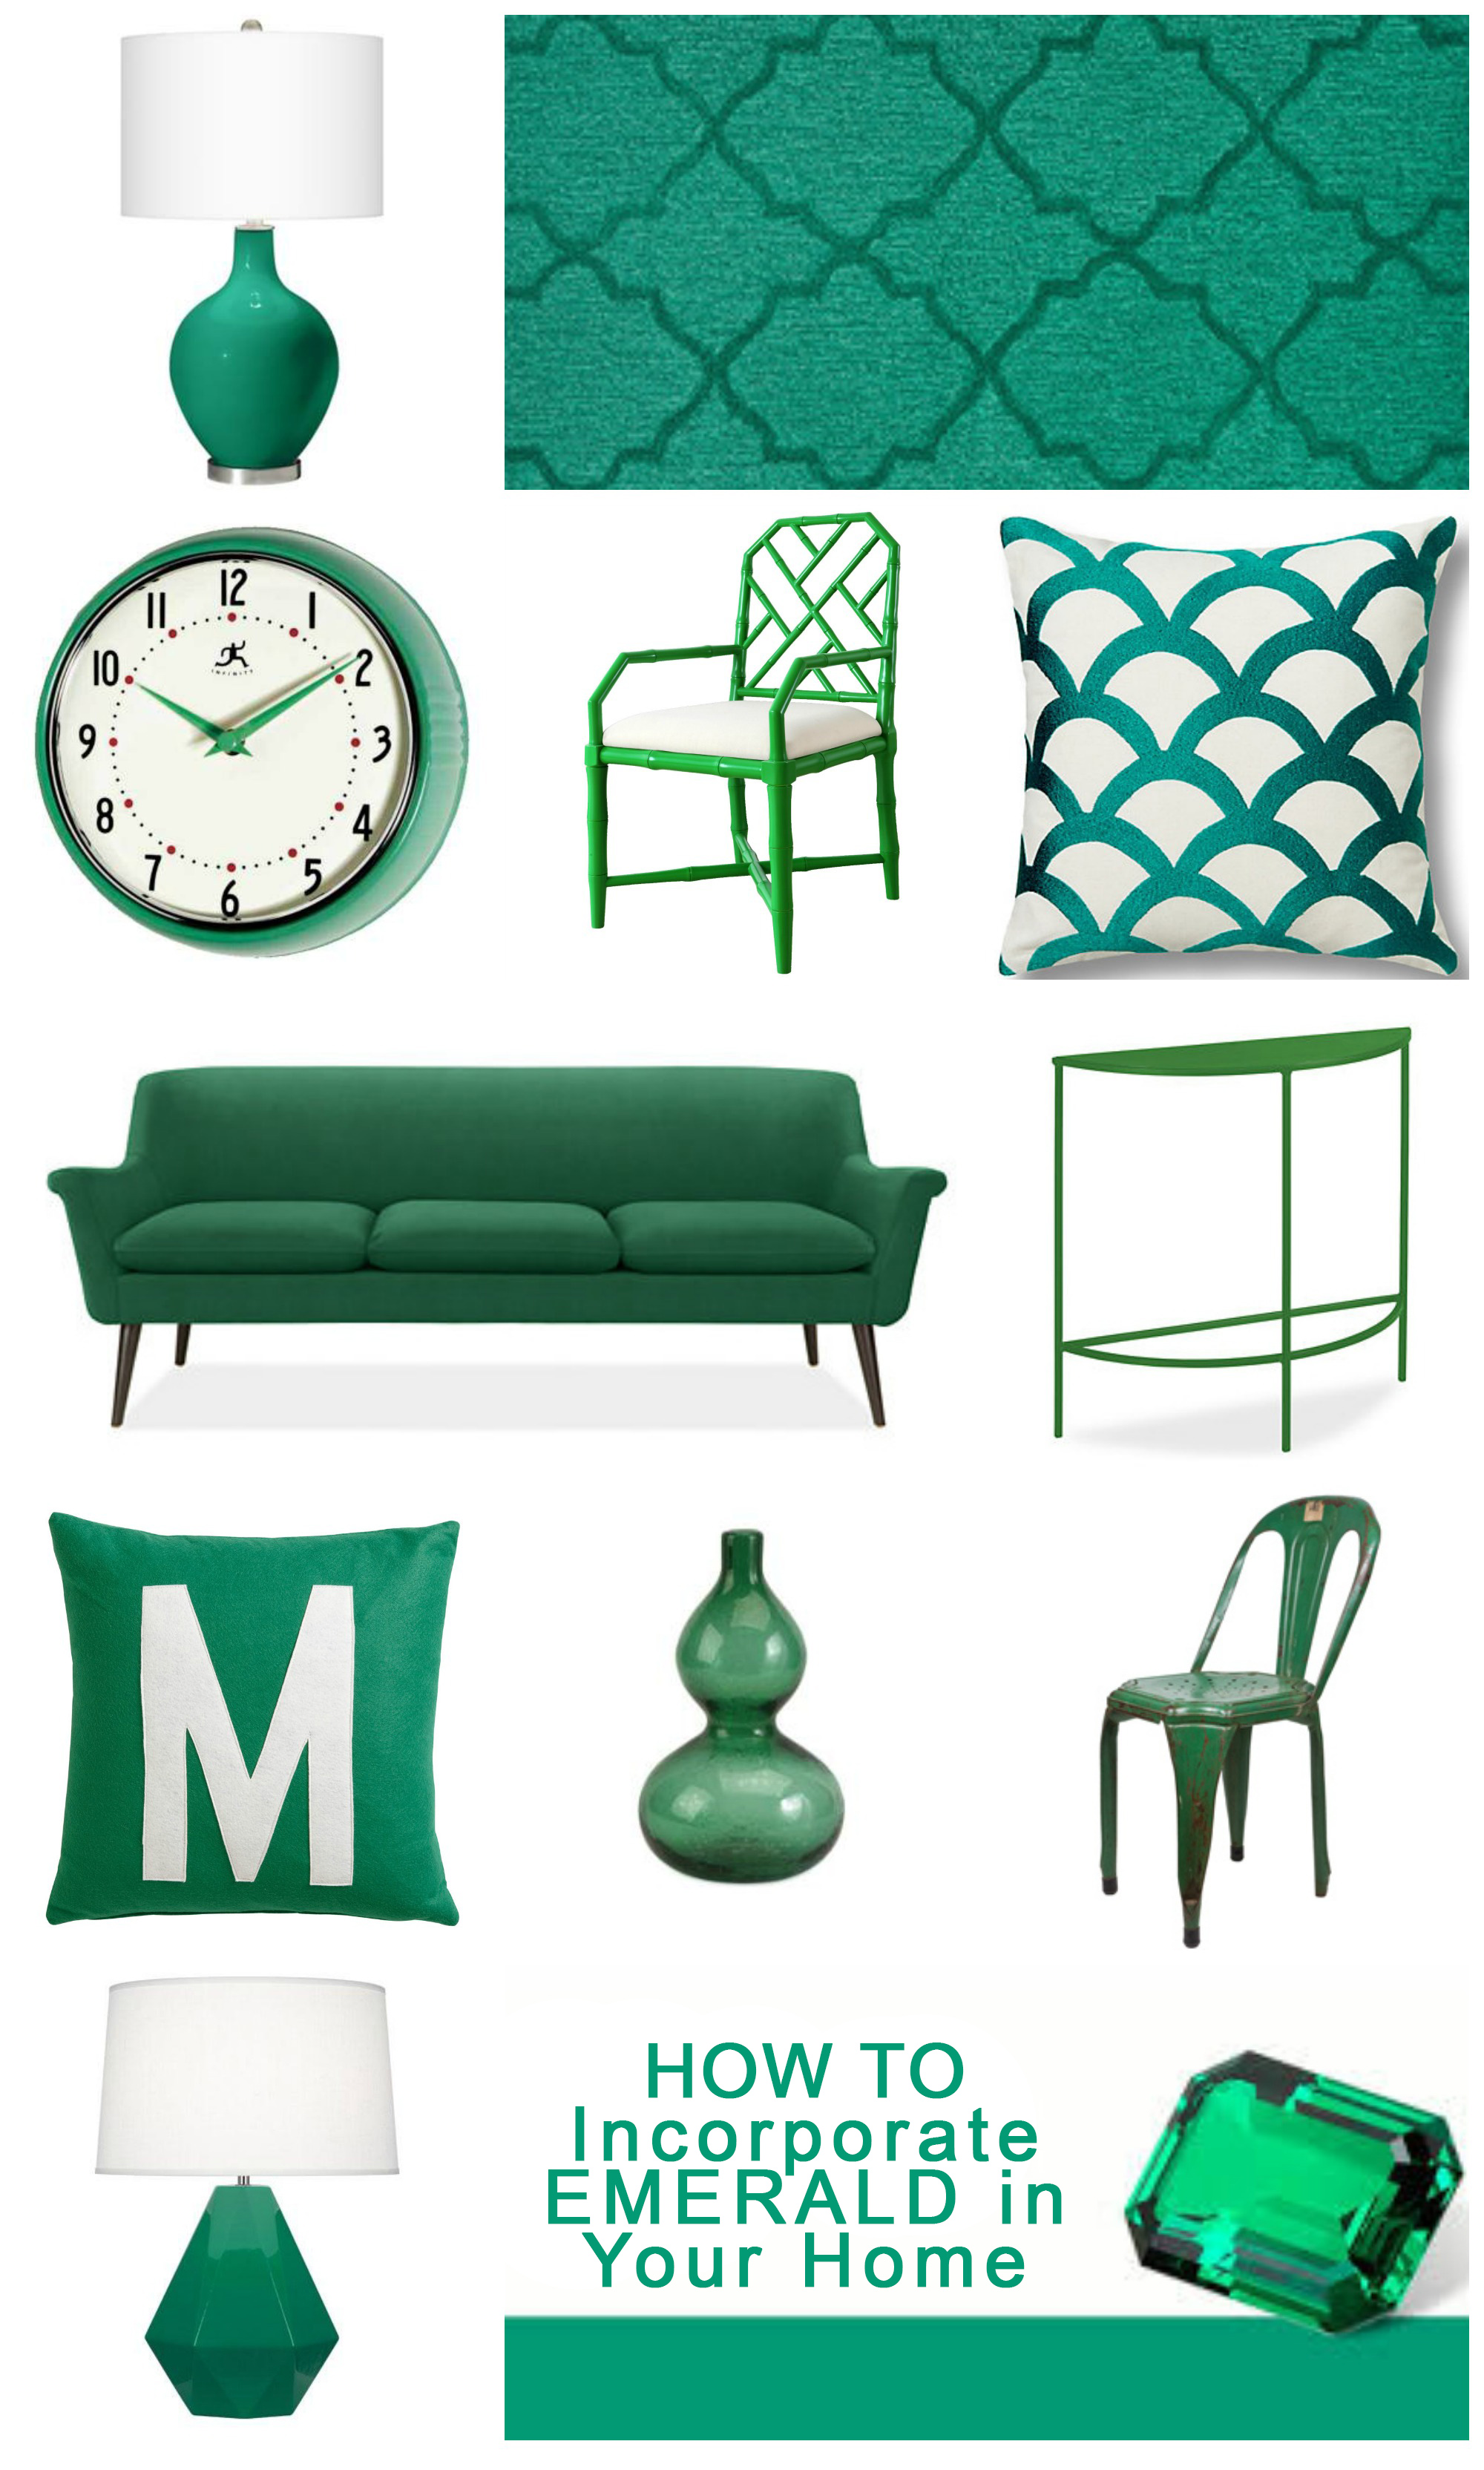 How to Incorporate Emerald in Your Home Decor